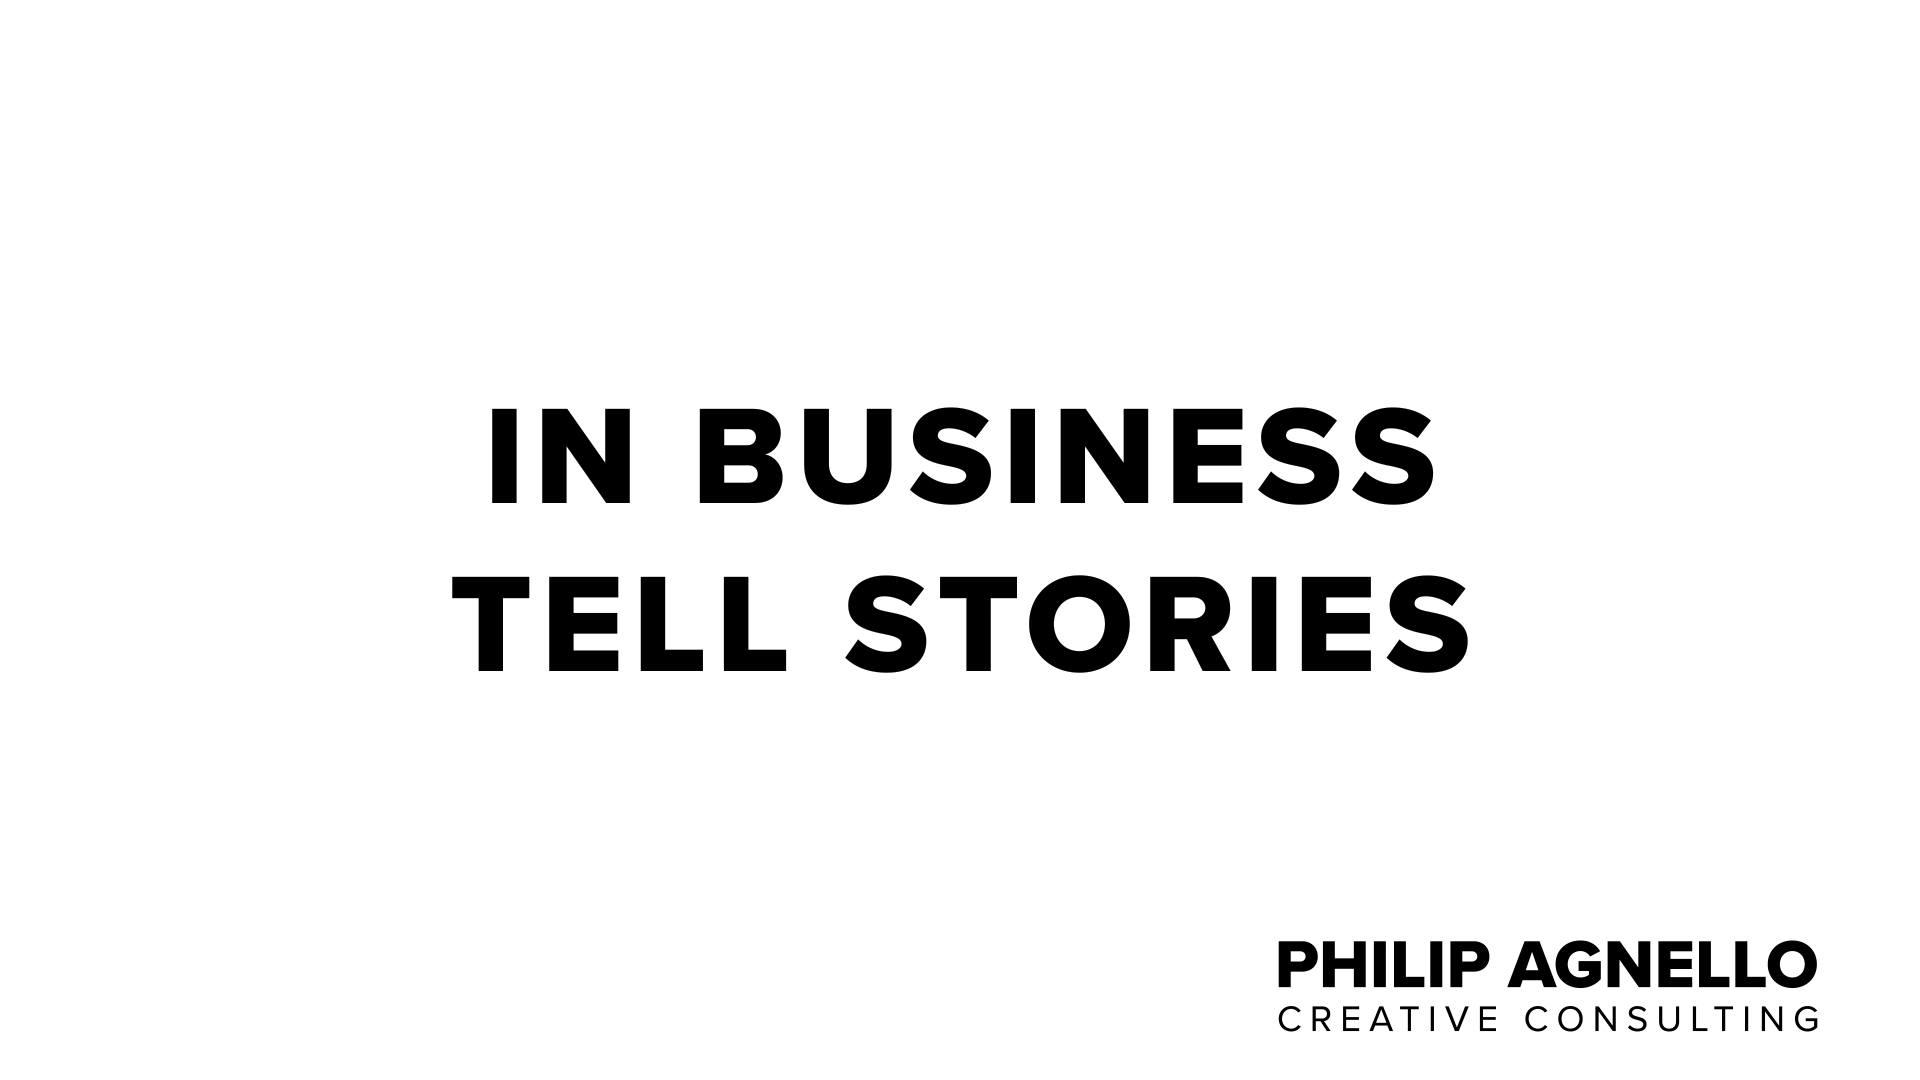 Title: In Business Tell Stories